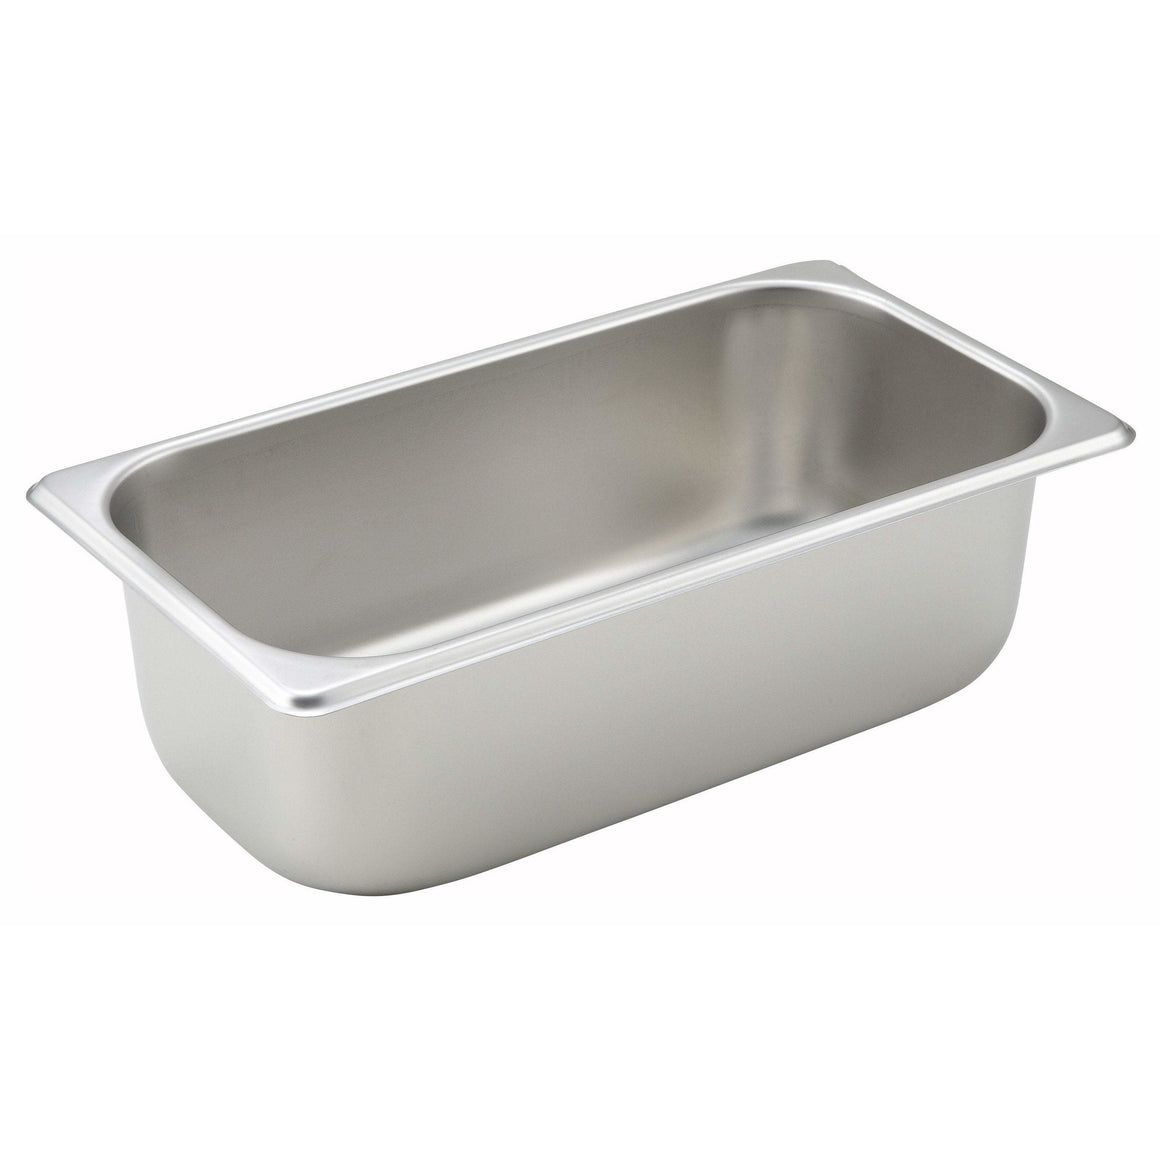 "Winco - SPT4 - Straight-sided Steam Pan, 1/3 Size, 4"", 25 Ga Stainless Steel - Steam Table"